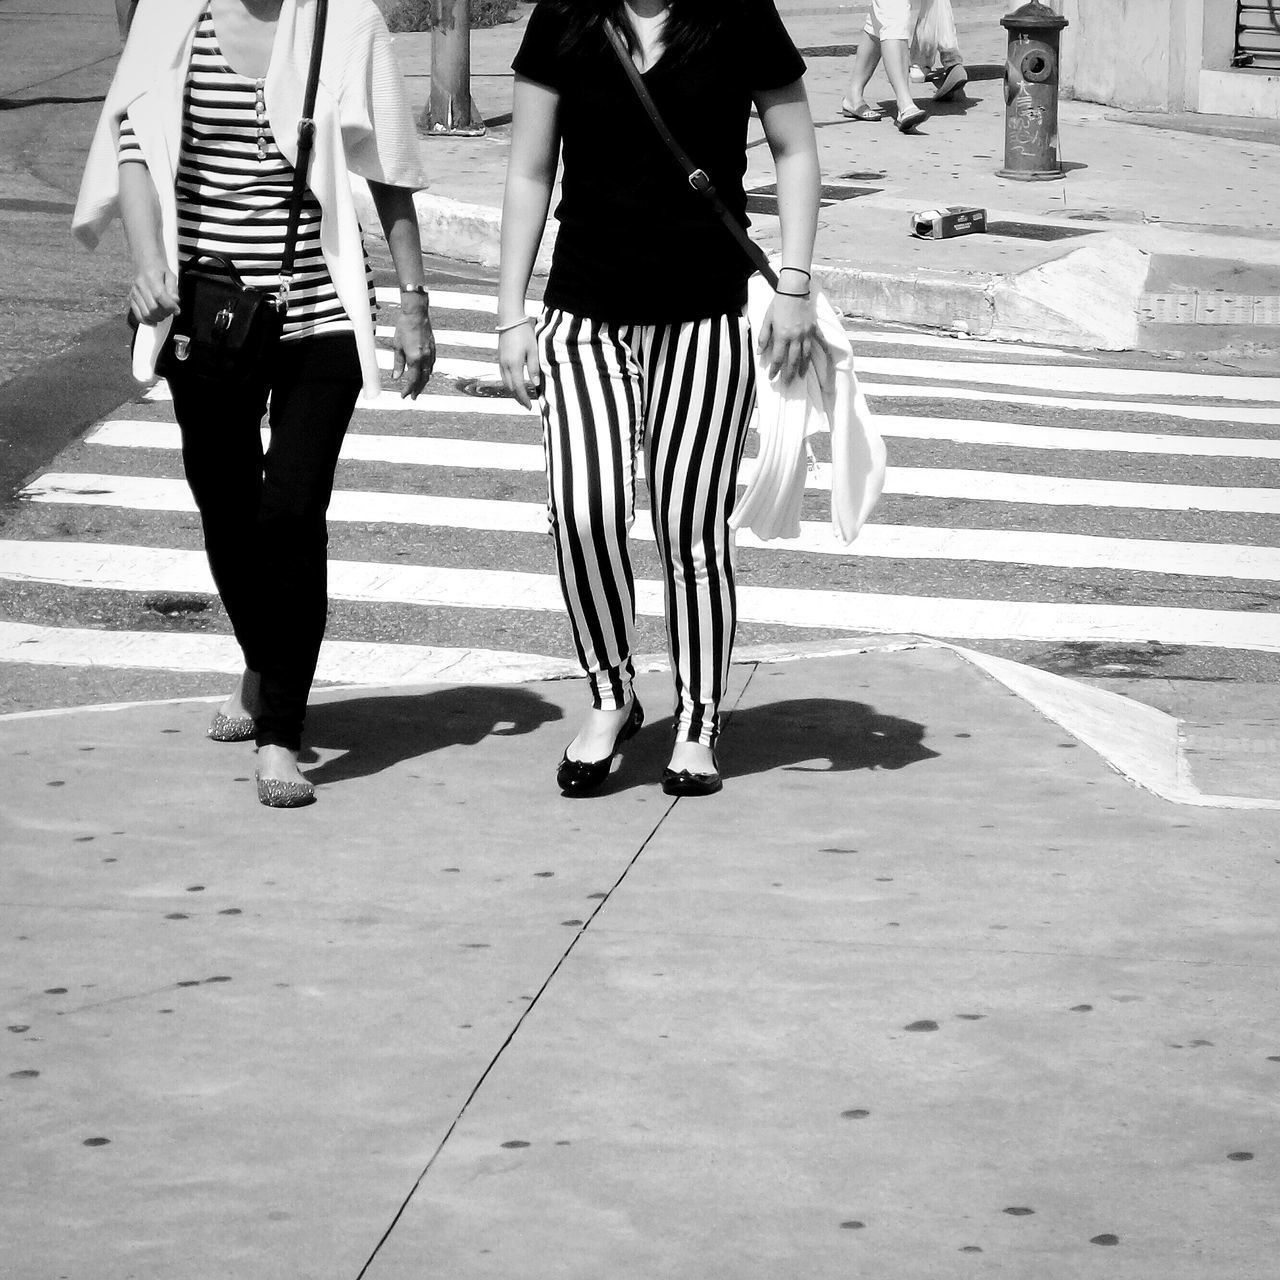 white stripes Open Edit Street Photography Streetphotography Streetphoto_bw Black & White Monochrome Candid Photography AMTPt_community EyeEm Best Shots Capture The Moment